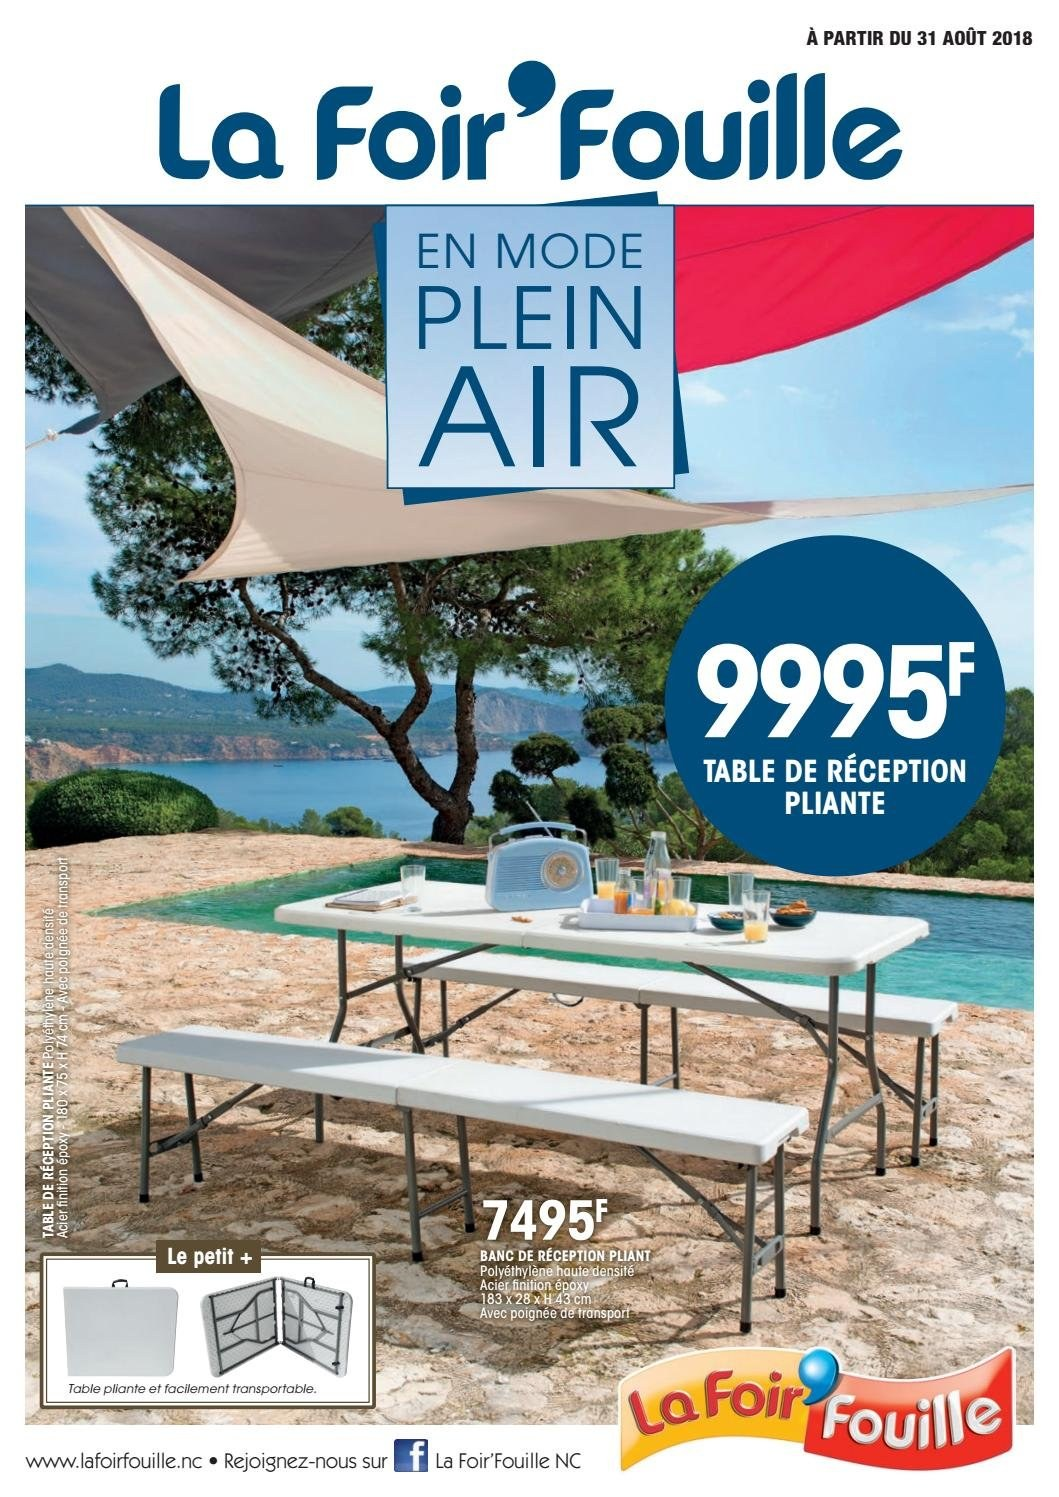 Catalogue La Foir'Fouille - 31.08.2018 - 21.09.2018 - Produits soldés - banc, table, table pliante. Page 1.